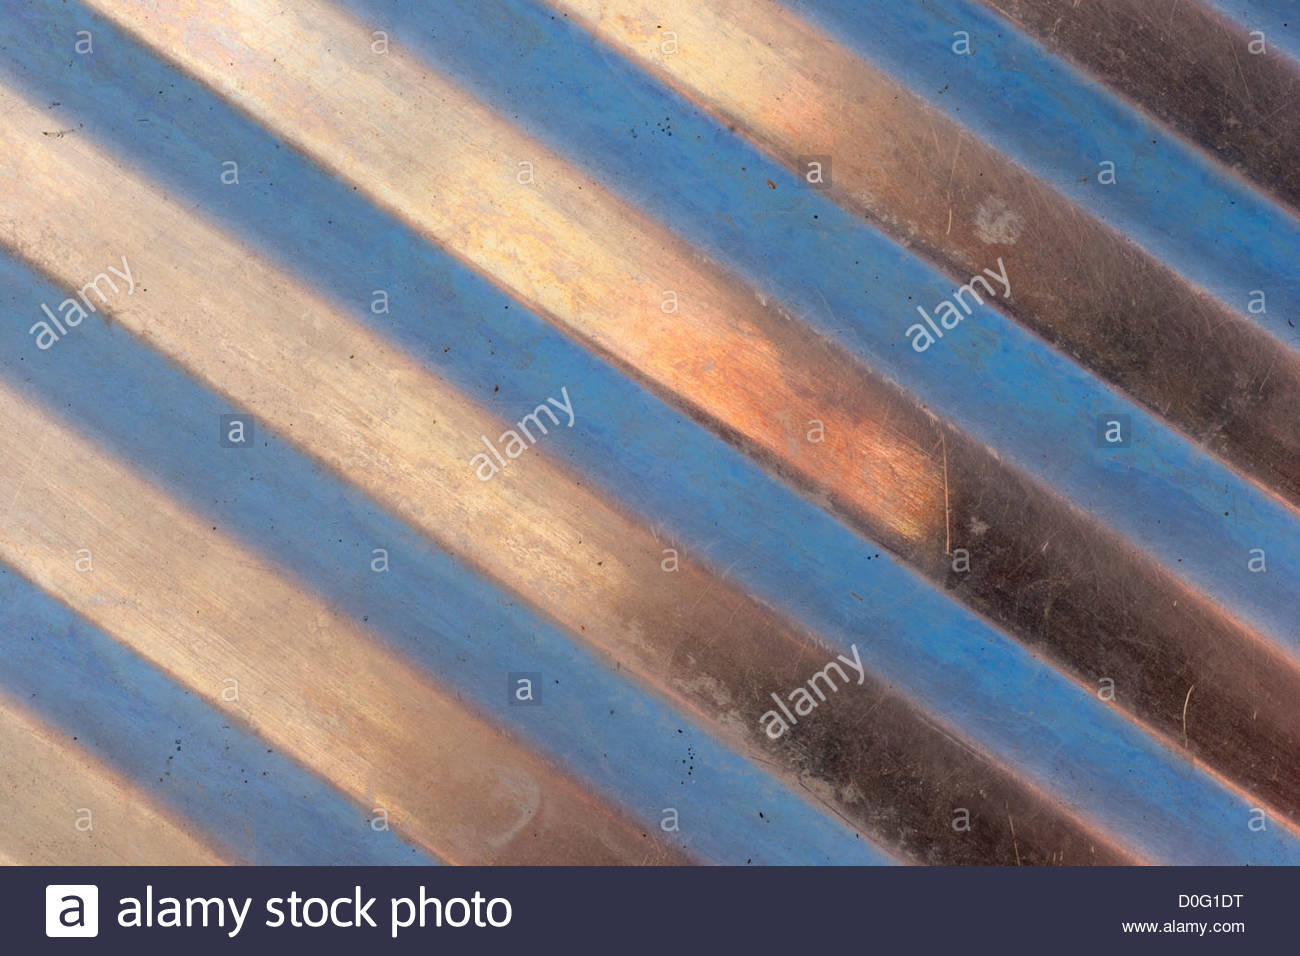 An old stainless steel draining board outside, being coloured by the reflection of washing on a washing line and - Stock Image